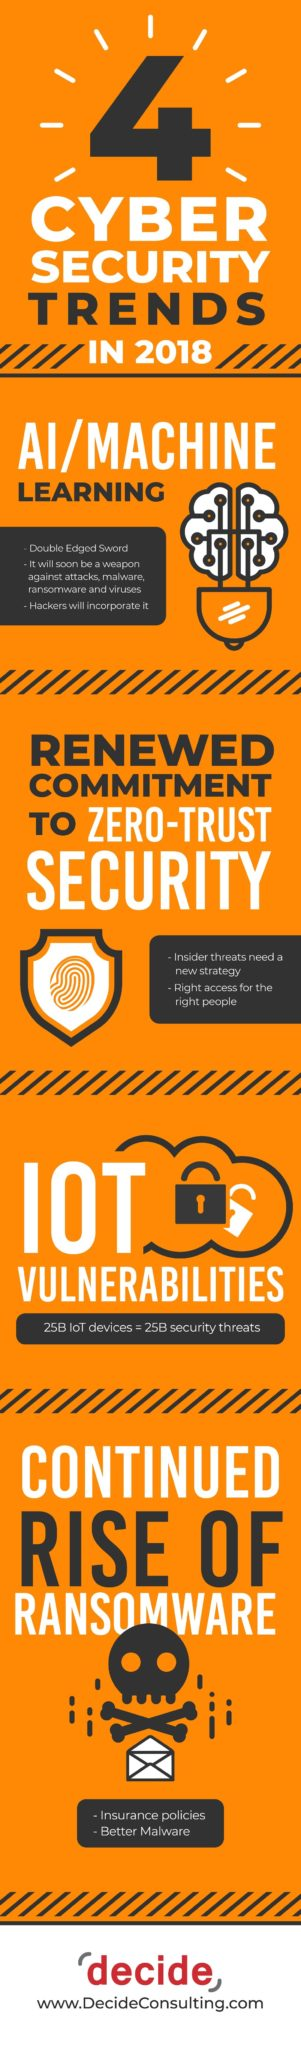 Infographic CyberSecurity Trends 2018